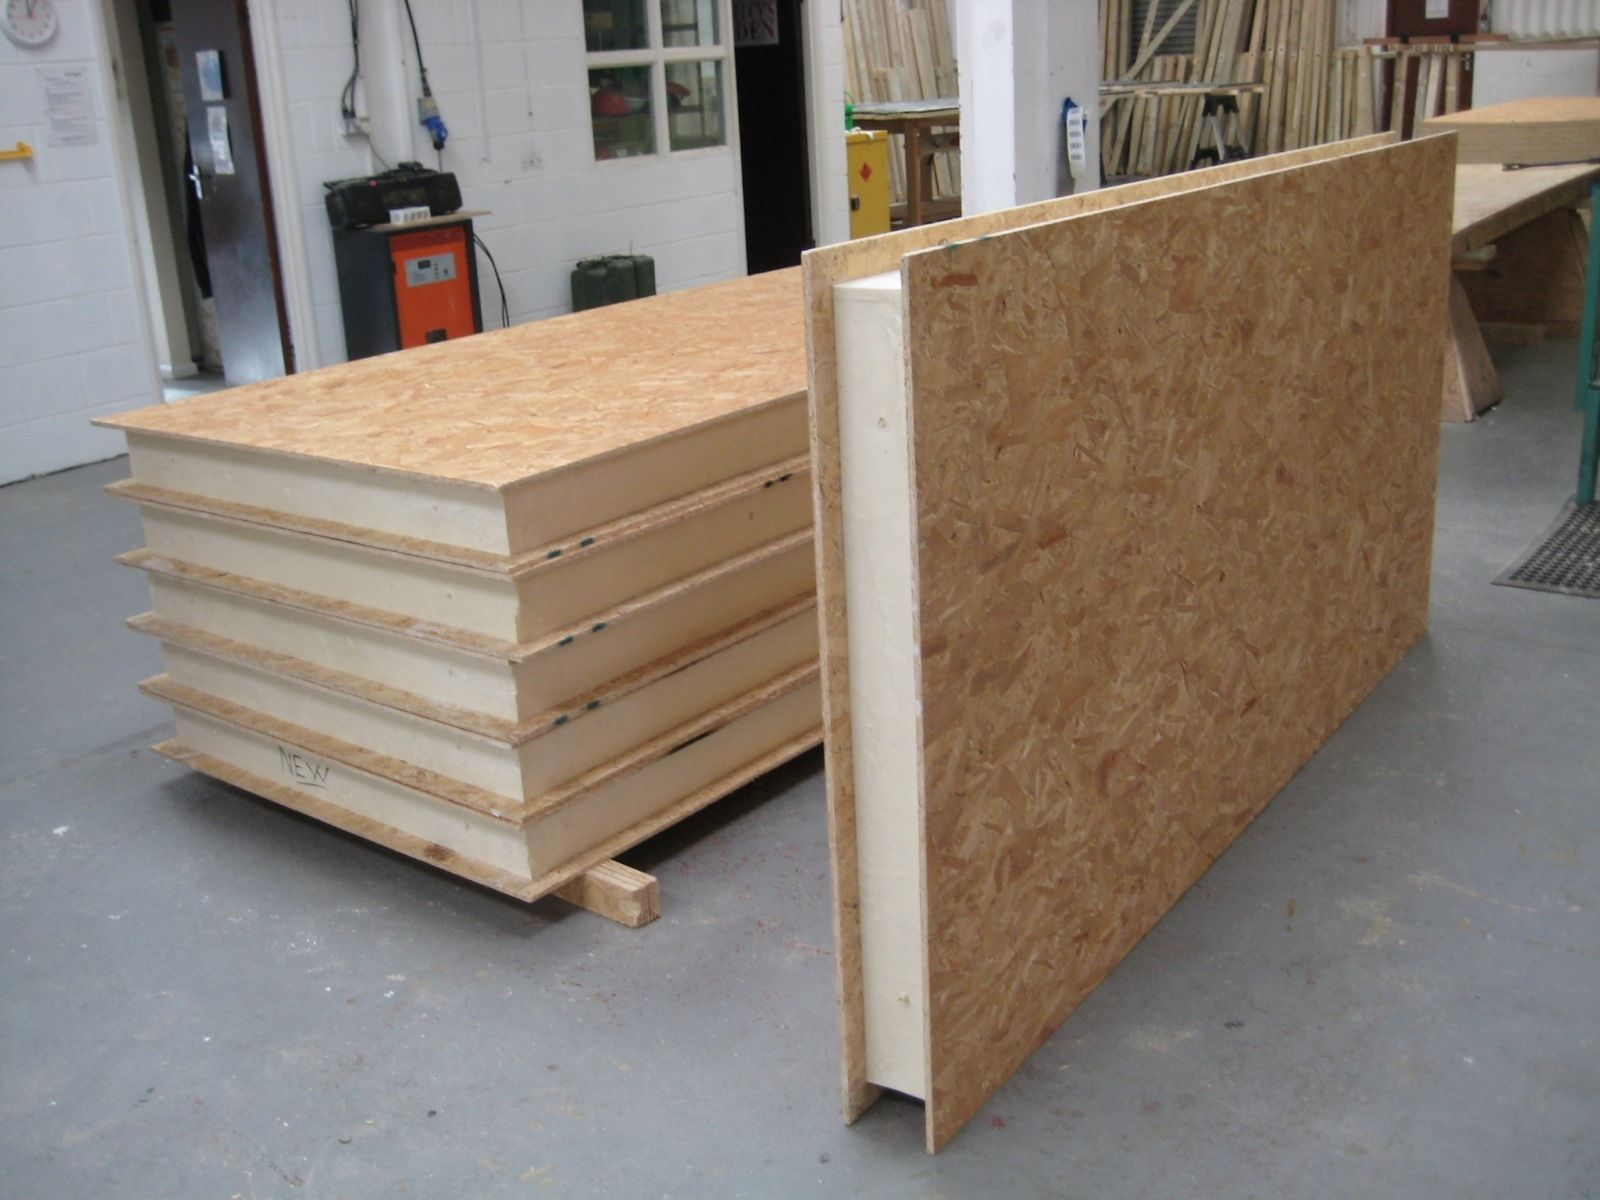 Structural insulated panels sips self build for garden for Building with sip